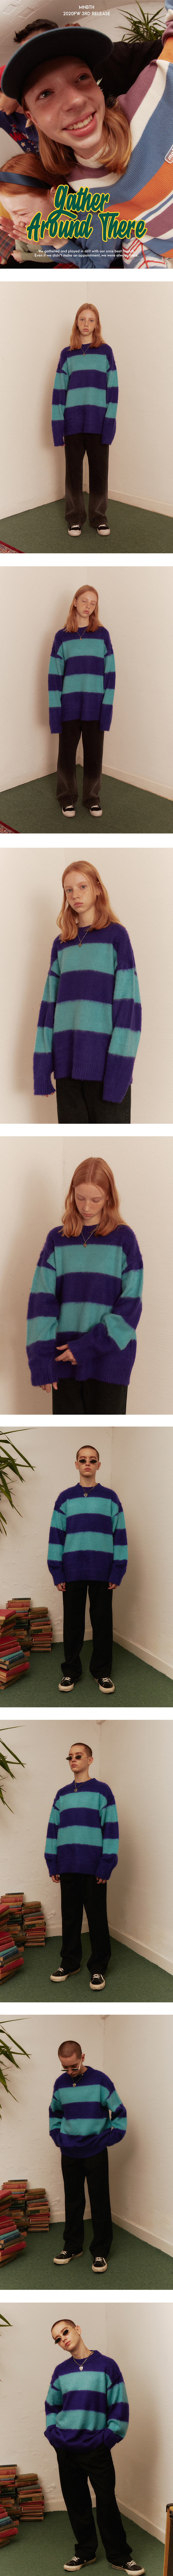 메인부스(MAINBOOTH) BSB Sweater(PURPLE)